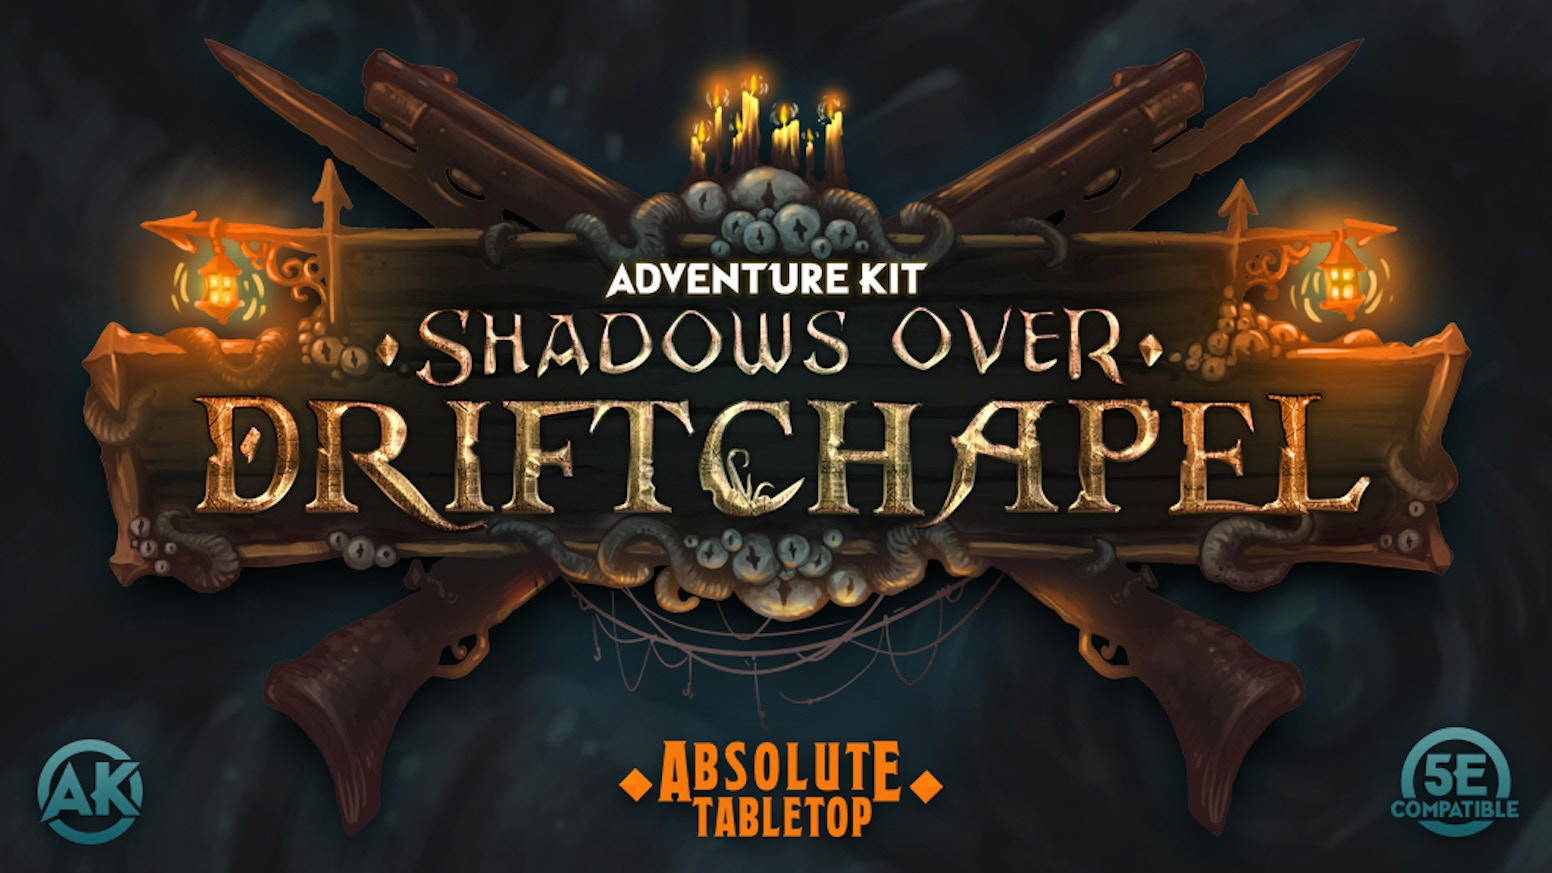 Adventure Kit: Shadows Over Driftchapel - 5E Compatible by